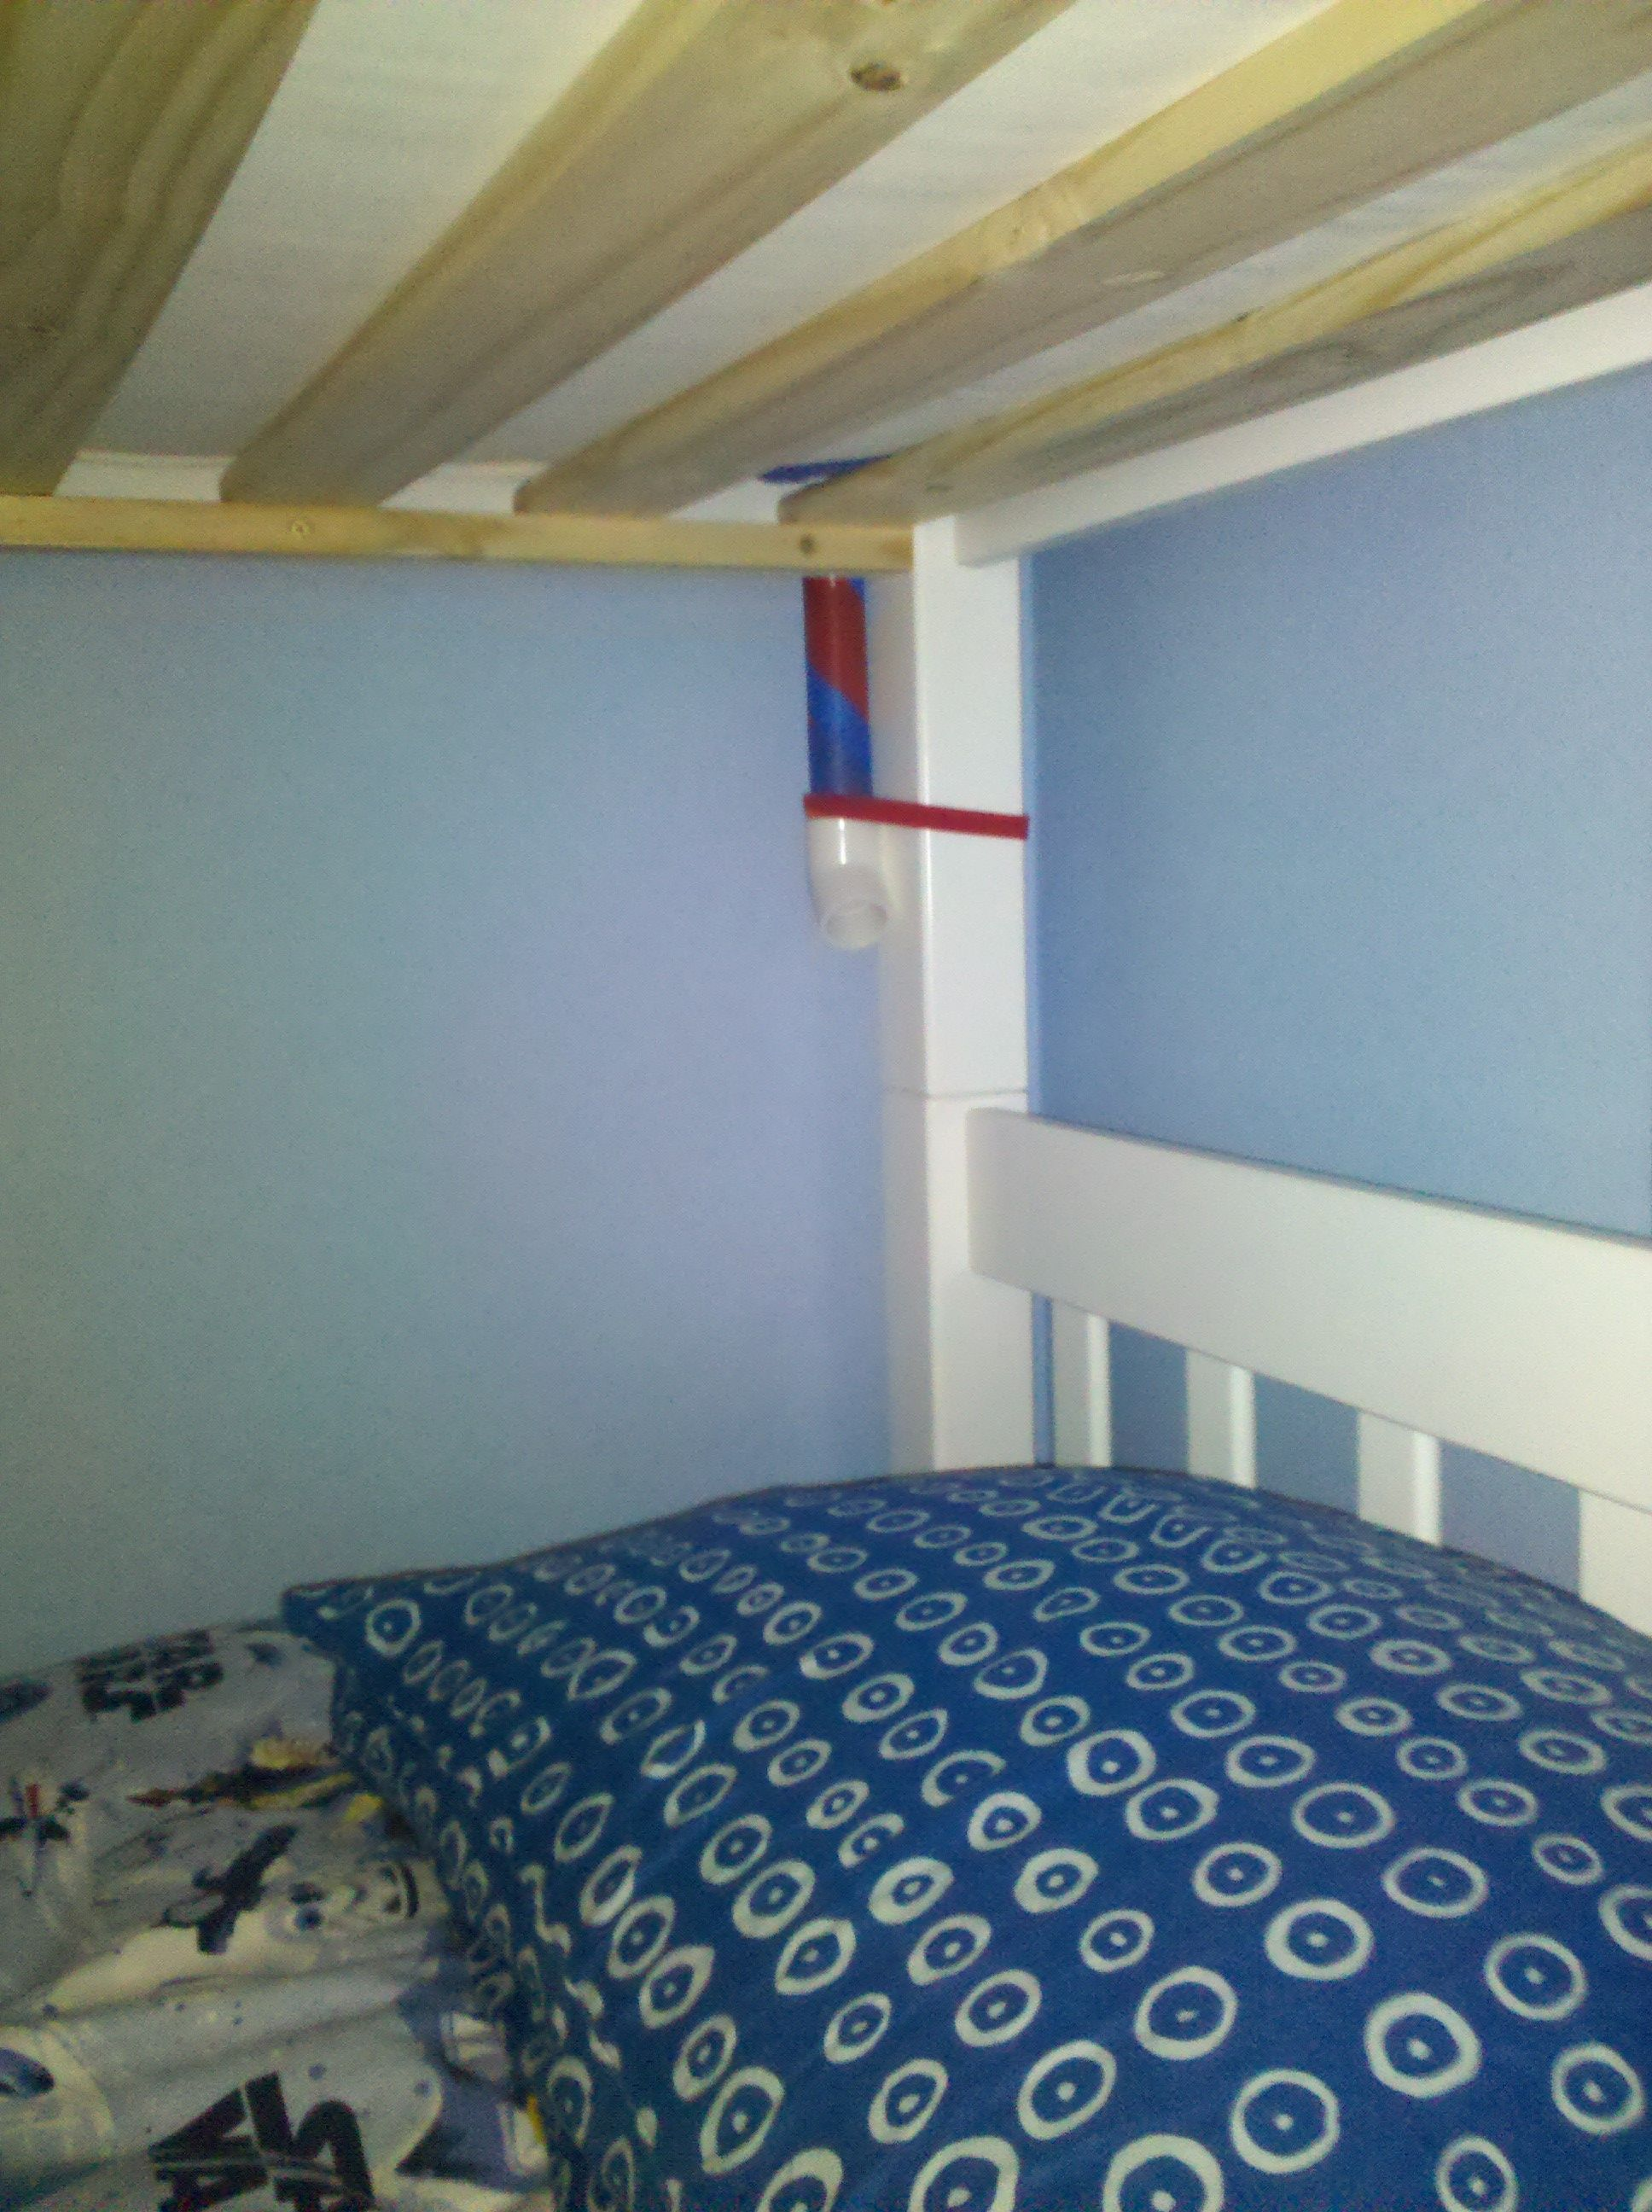 Bunk Bed Whisper Tube. Pvc Pipe Wrapped In Tape.